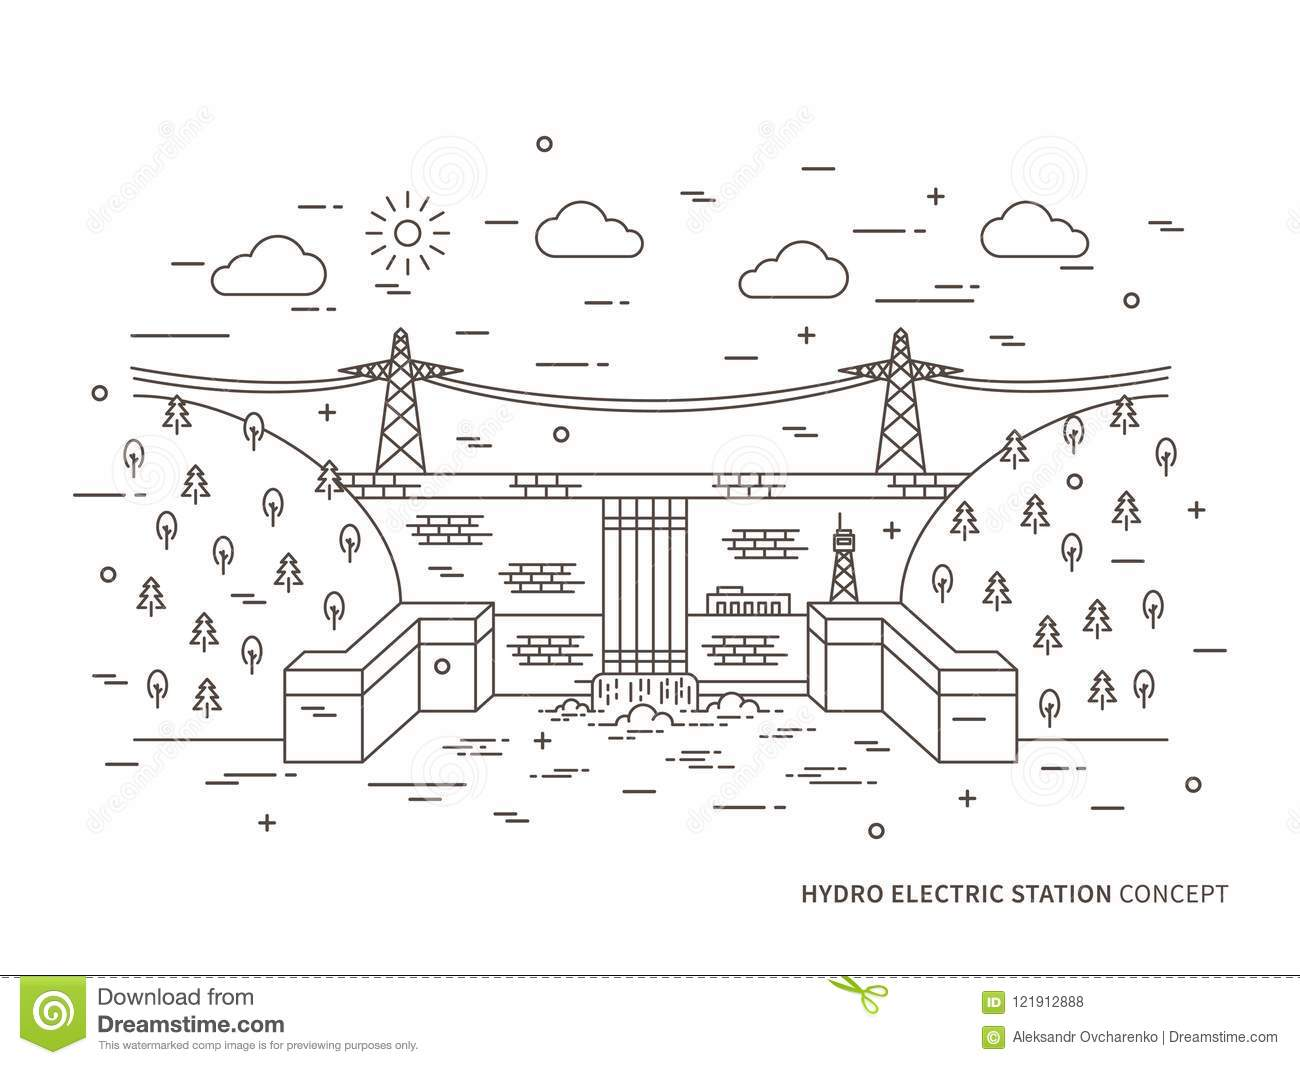 hight resolution of linear hydro electric station hydroelectric power plant vector illustration hydro power engineering waterpower plant hydroelectric plant